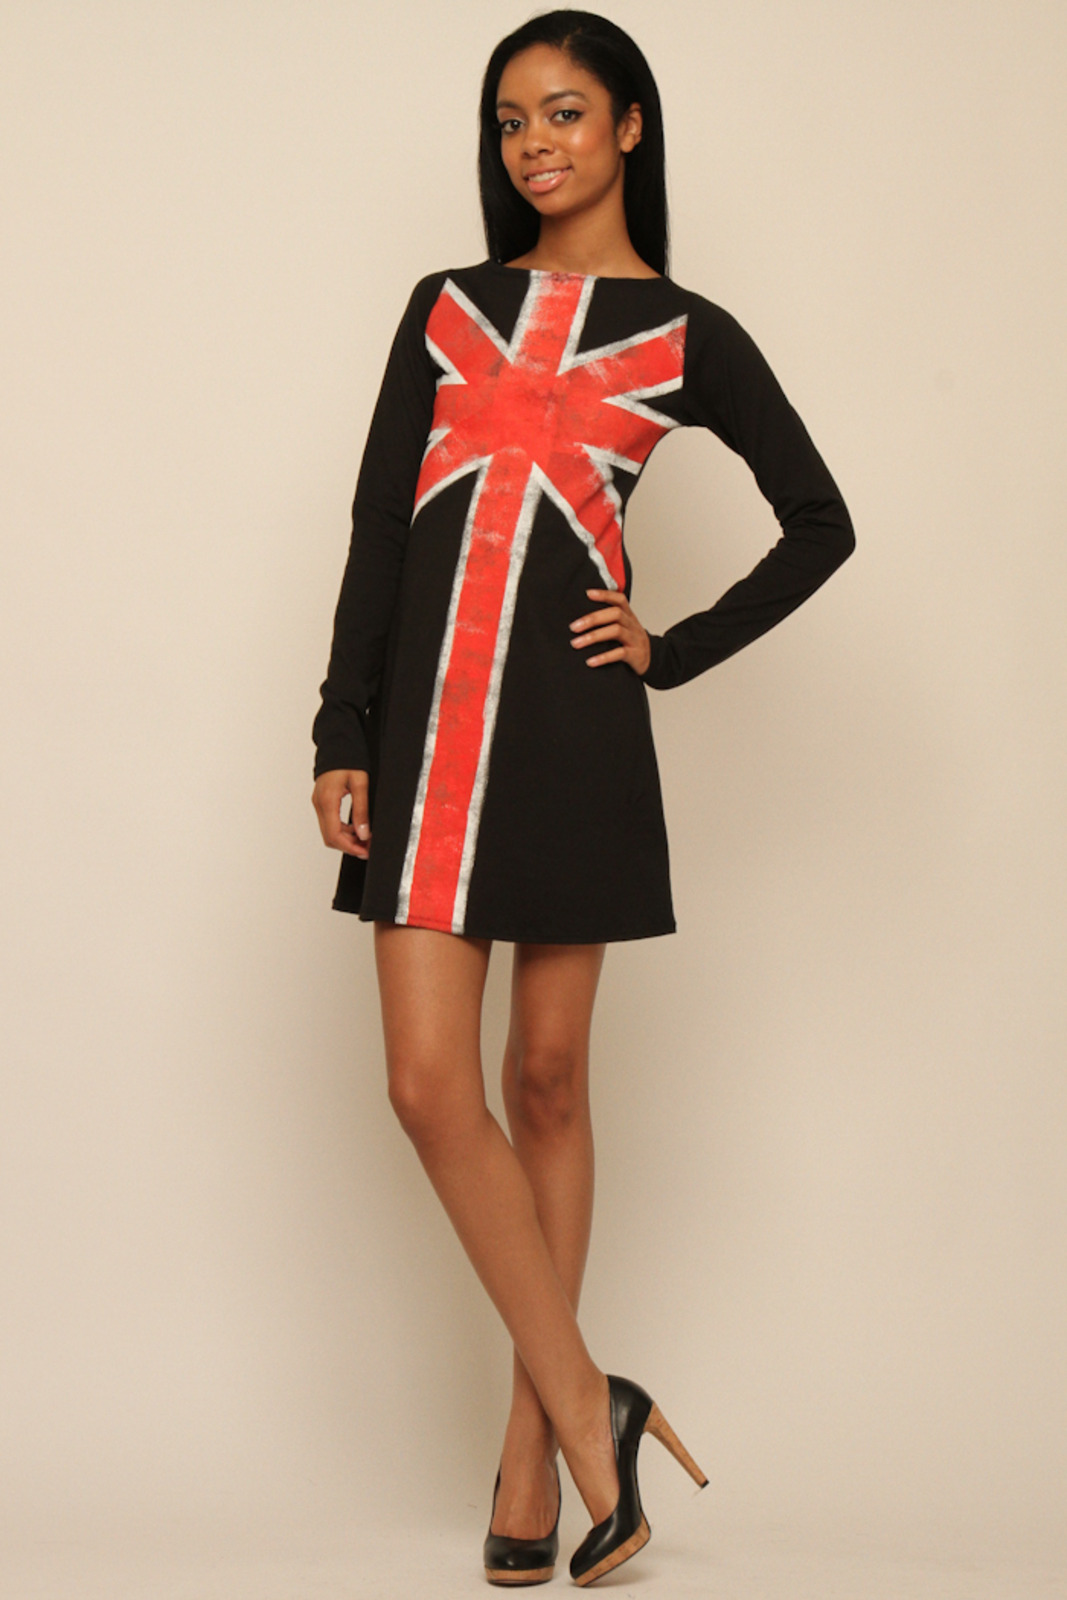 Lois Eastlund Union Jack Dress From Lower East Side By